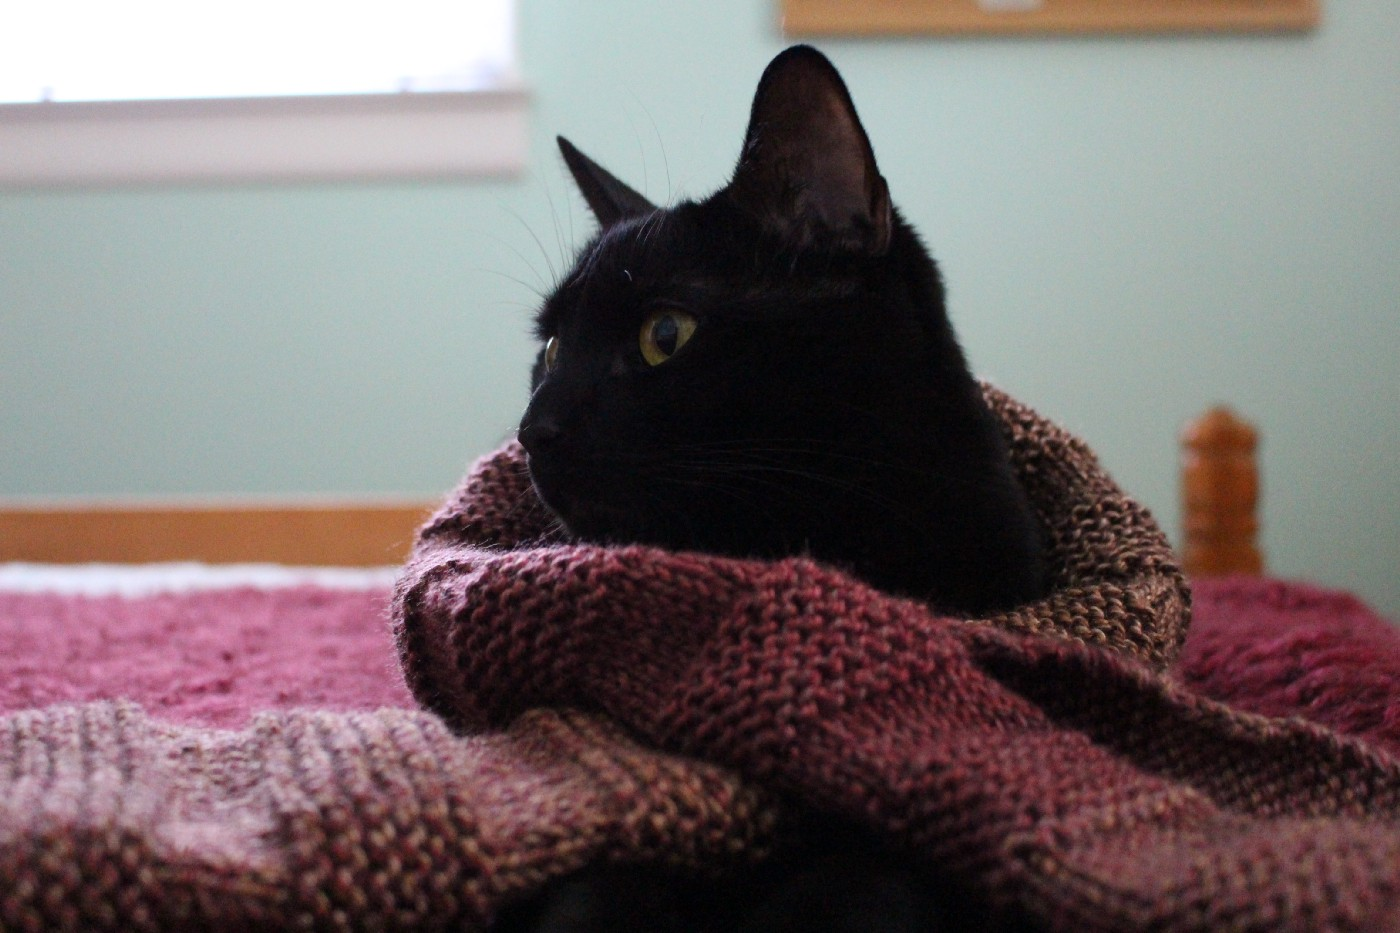 A black cat is wrapped in a burgundy knitted blanket.